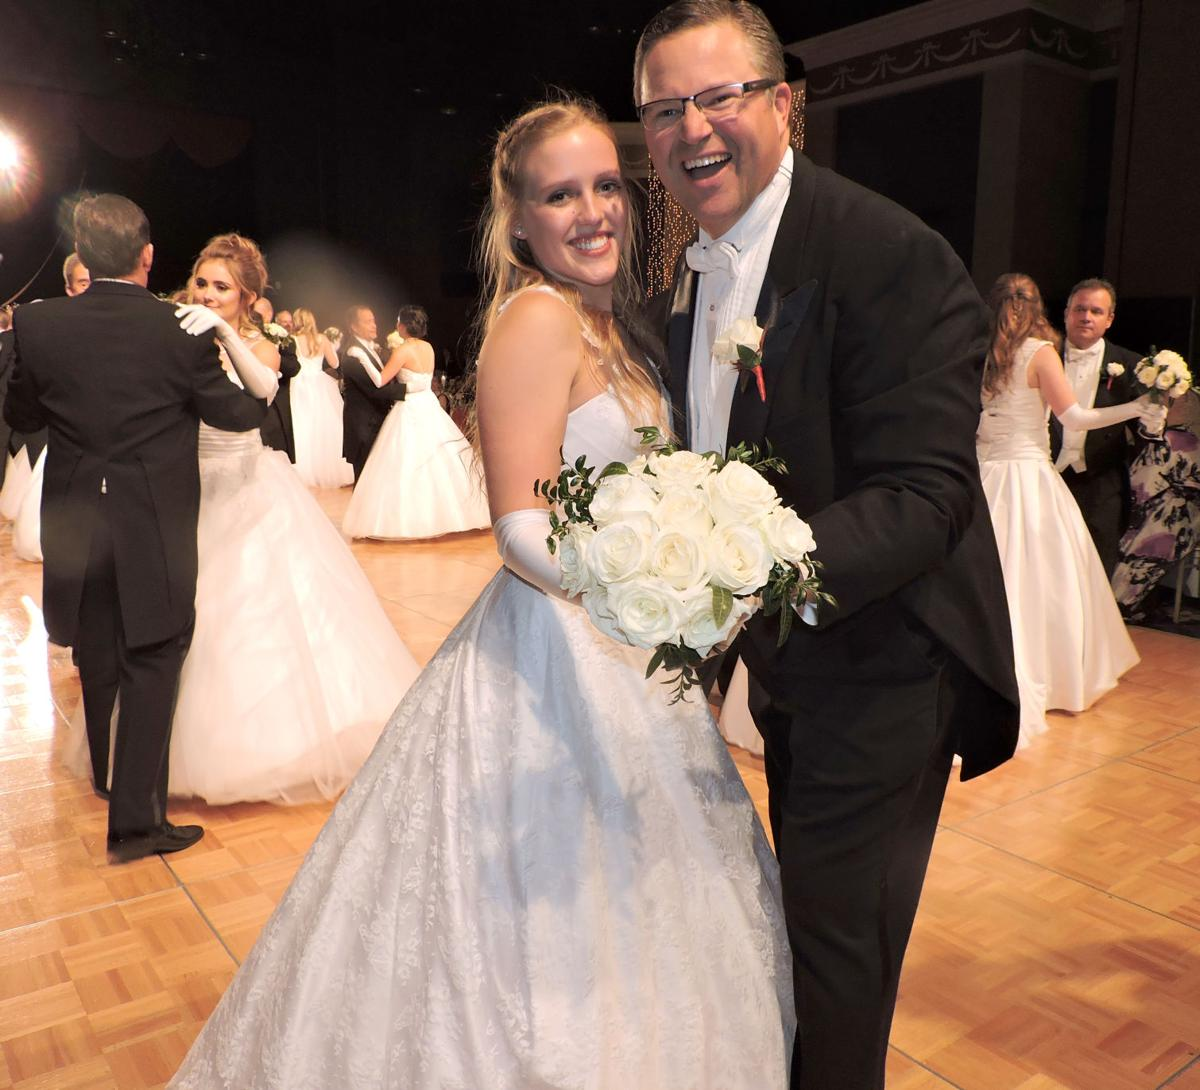 2017 Debutante Ball: Peter Husak and daughter Annabel were two of the fathers and daughters sharing the first dance. 122217 Photo by Linda Navarro